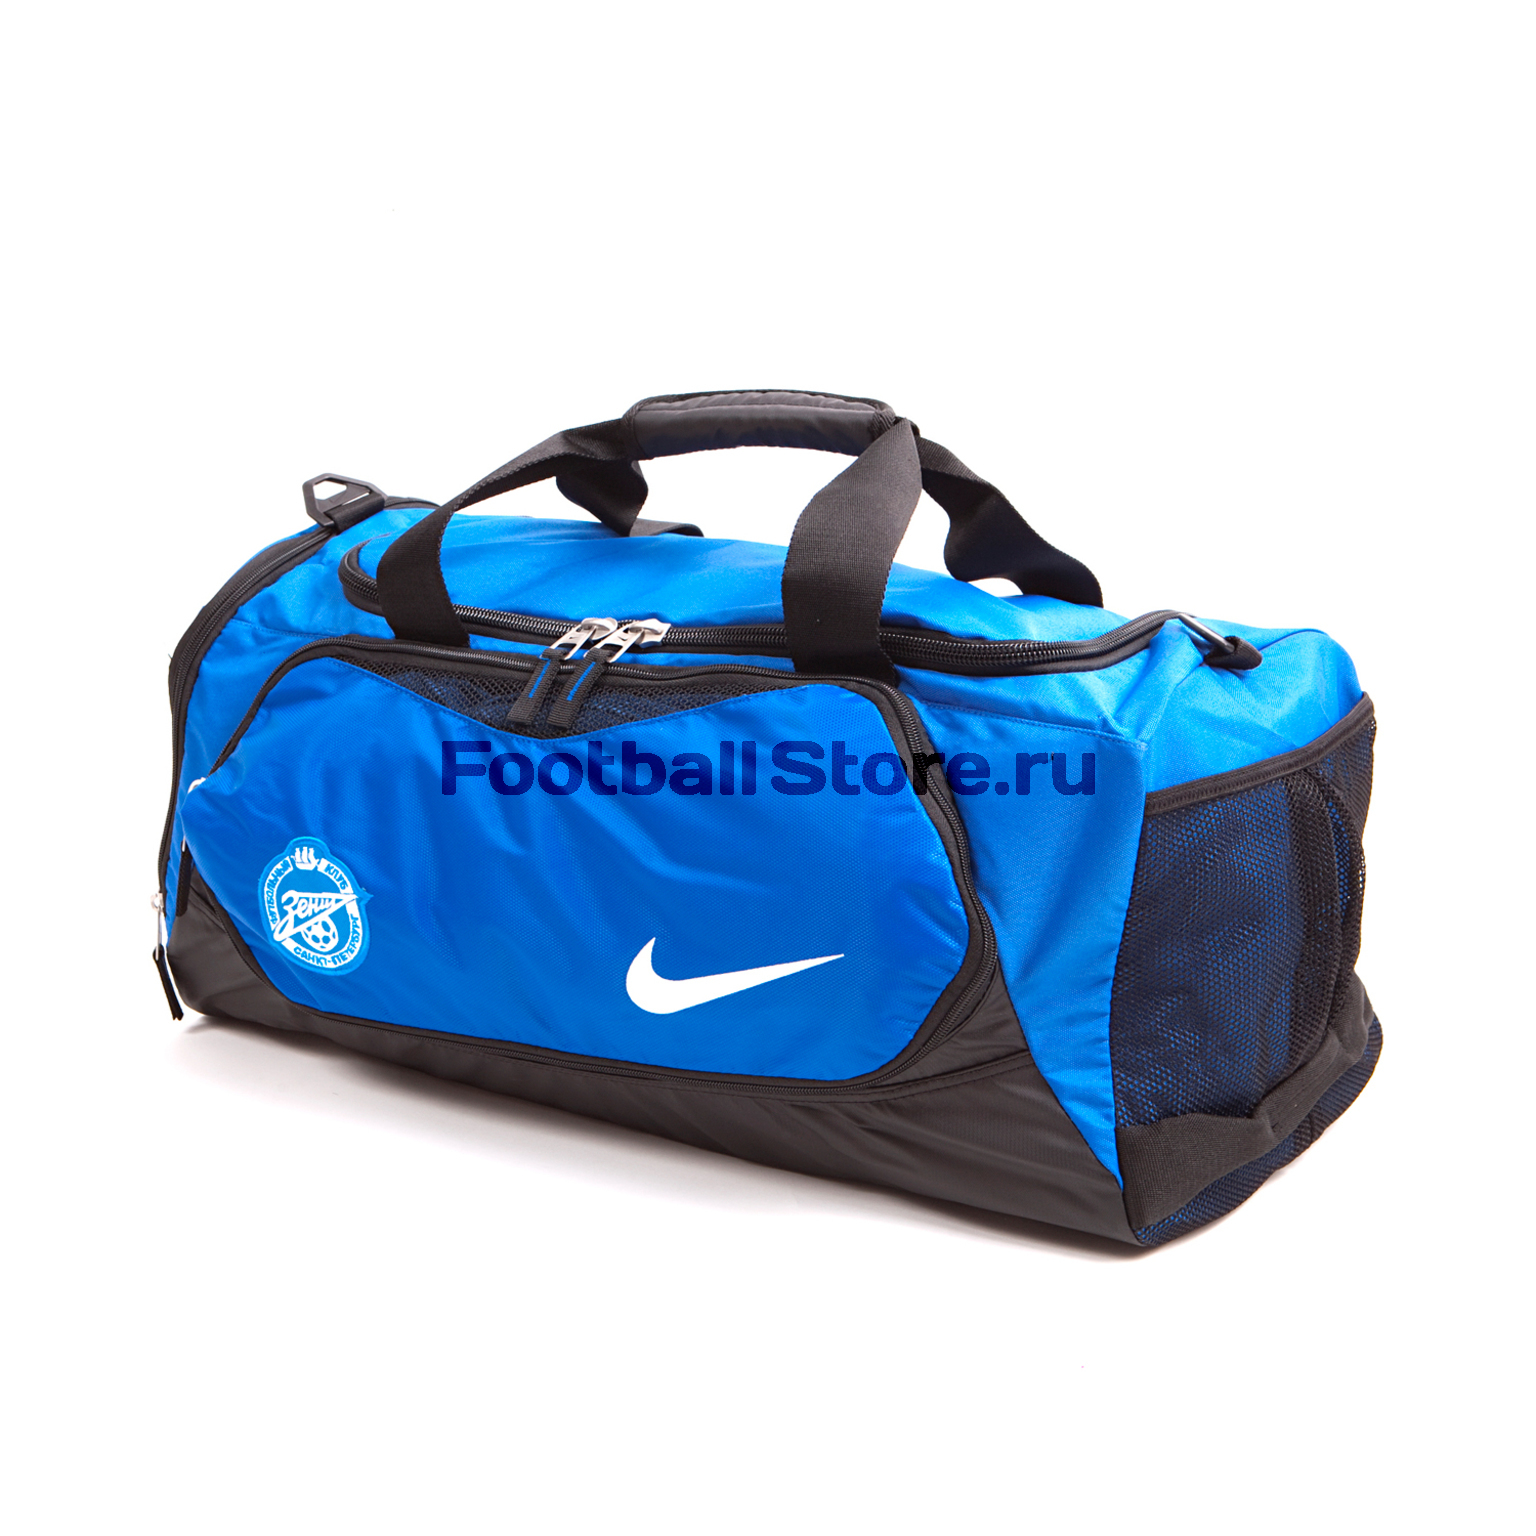 Сумки/Рюкзаки Nike Сумка Nike Team Train Max Air Duffel Medium BA4016-479